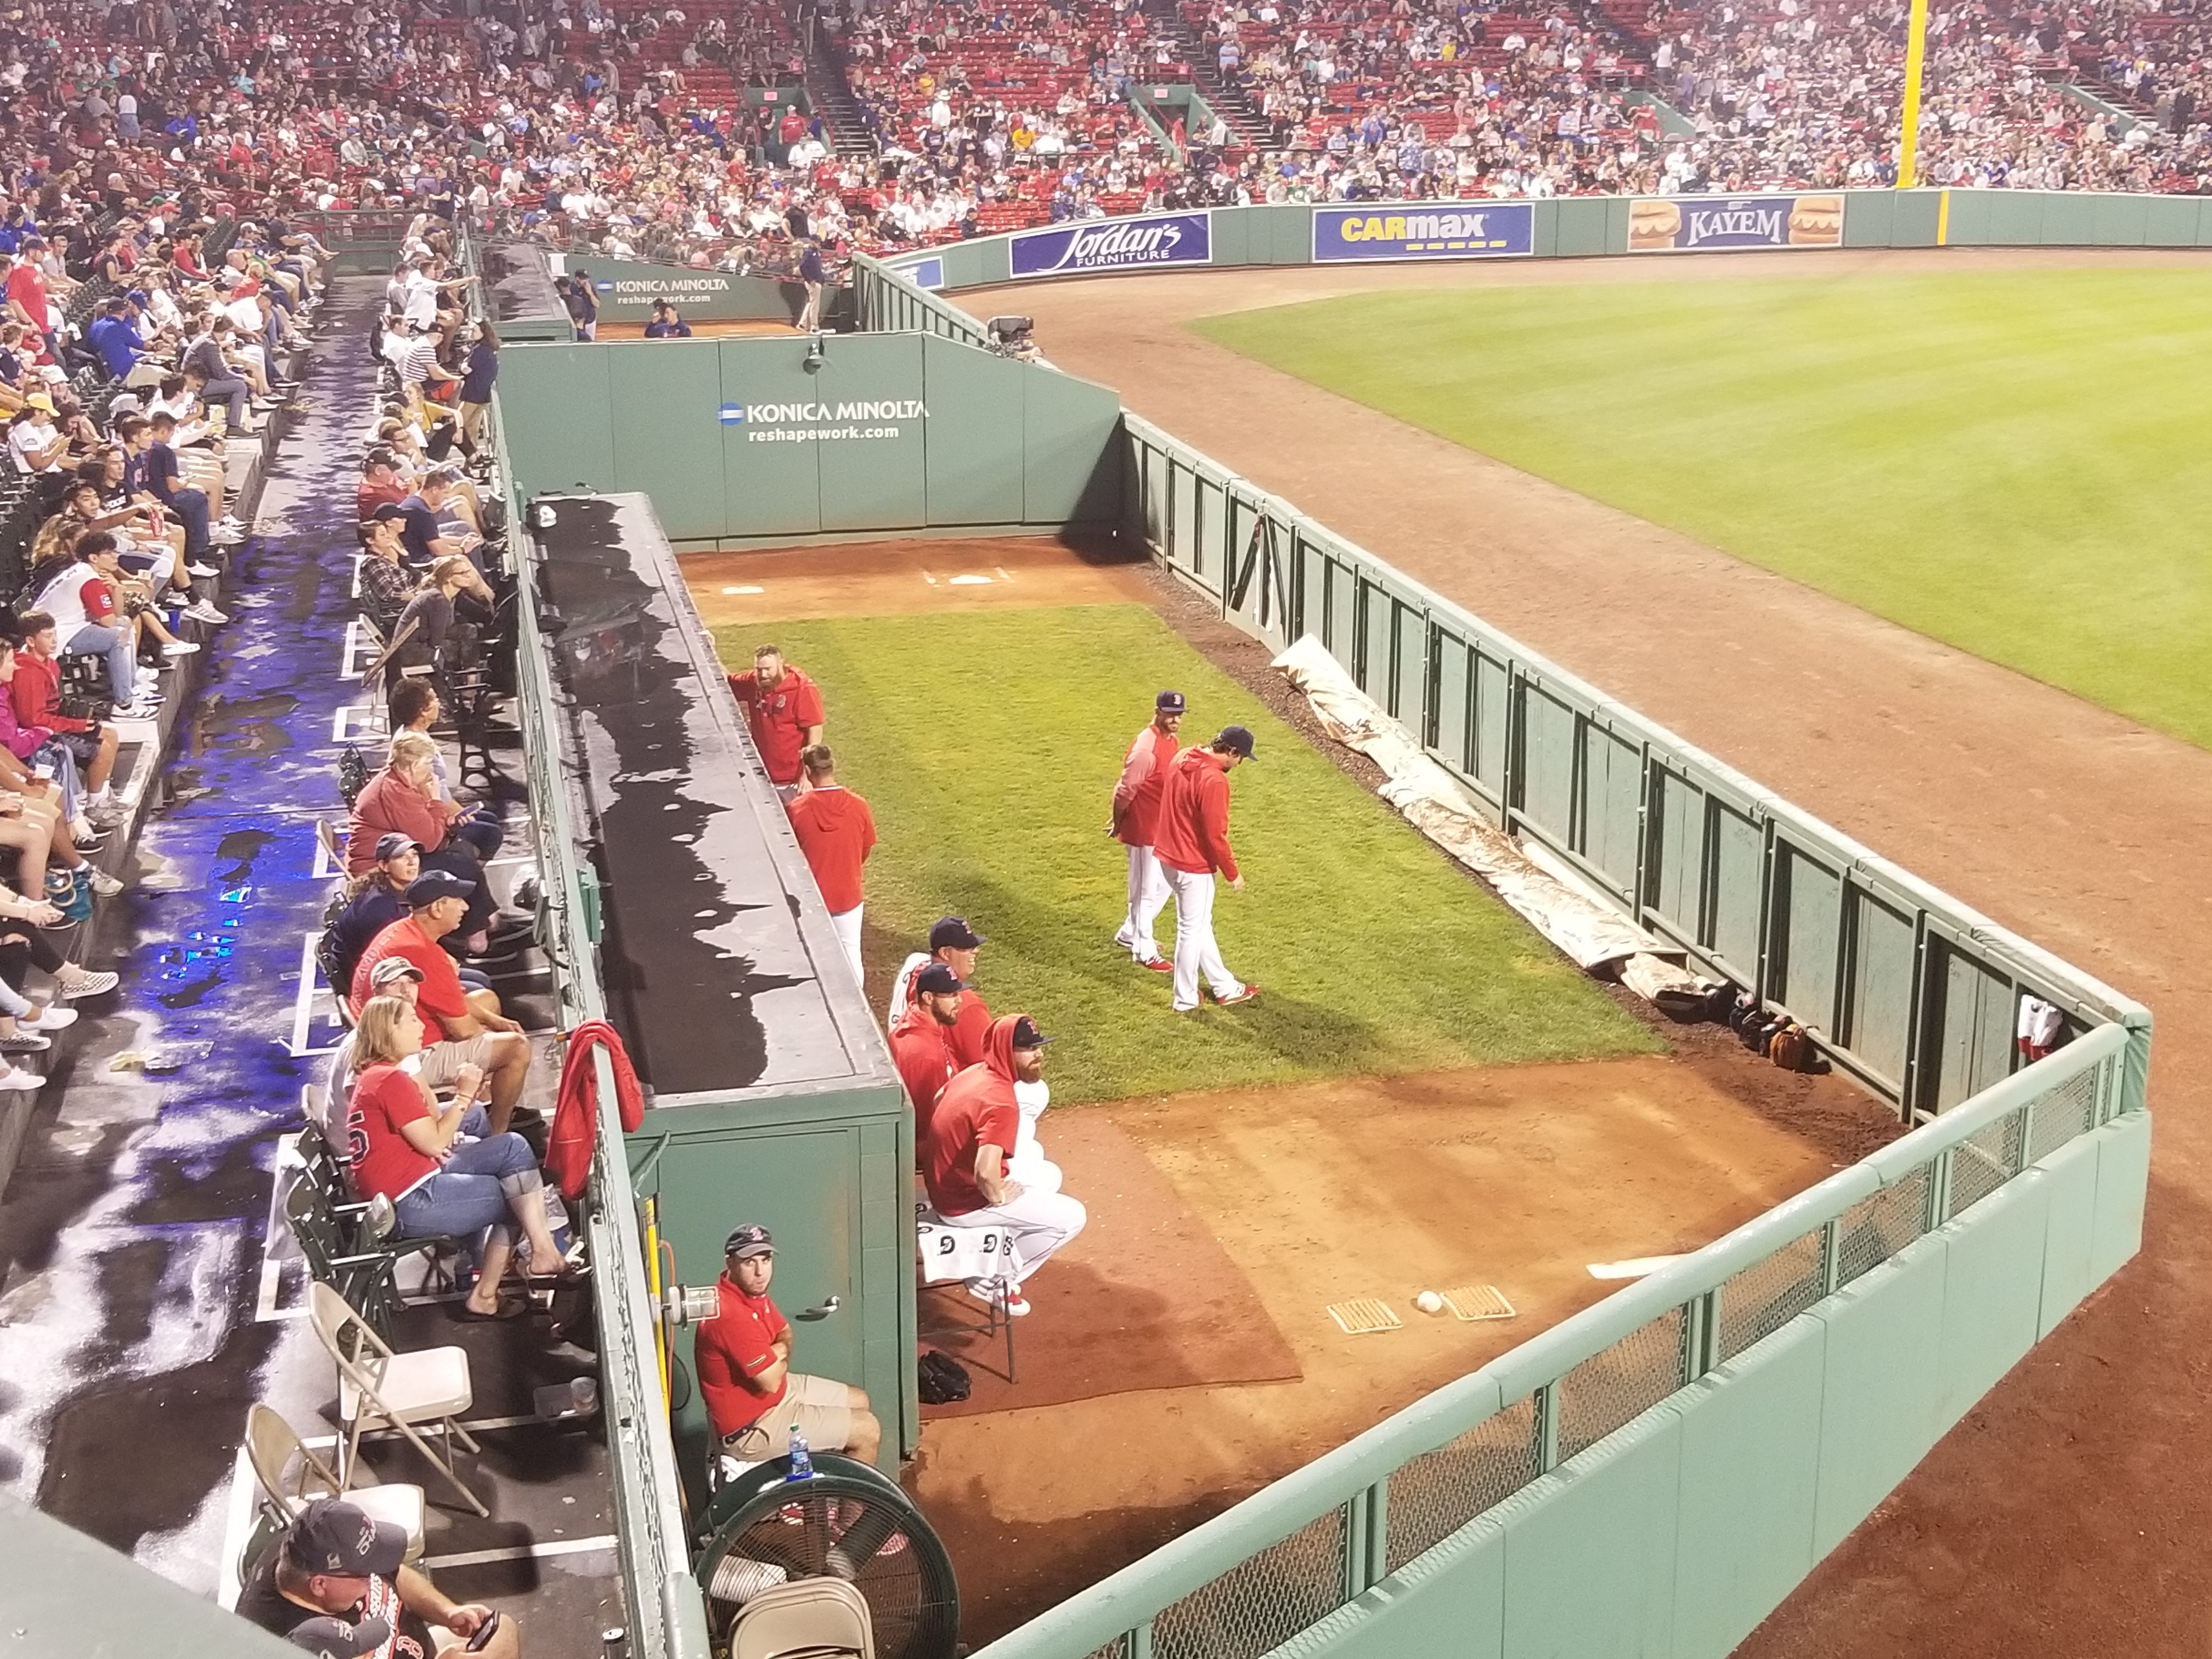 The unexpected problem in this crowded Red Sox bullpen